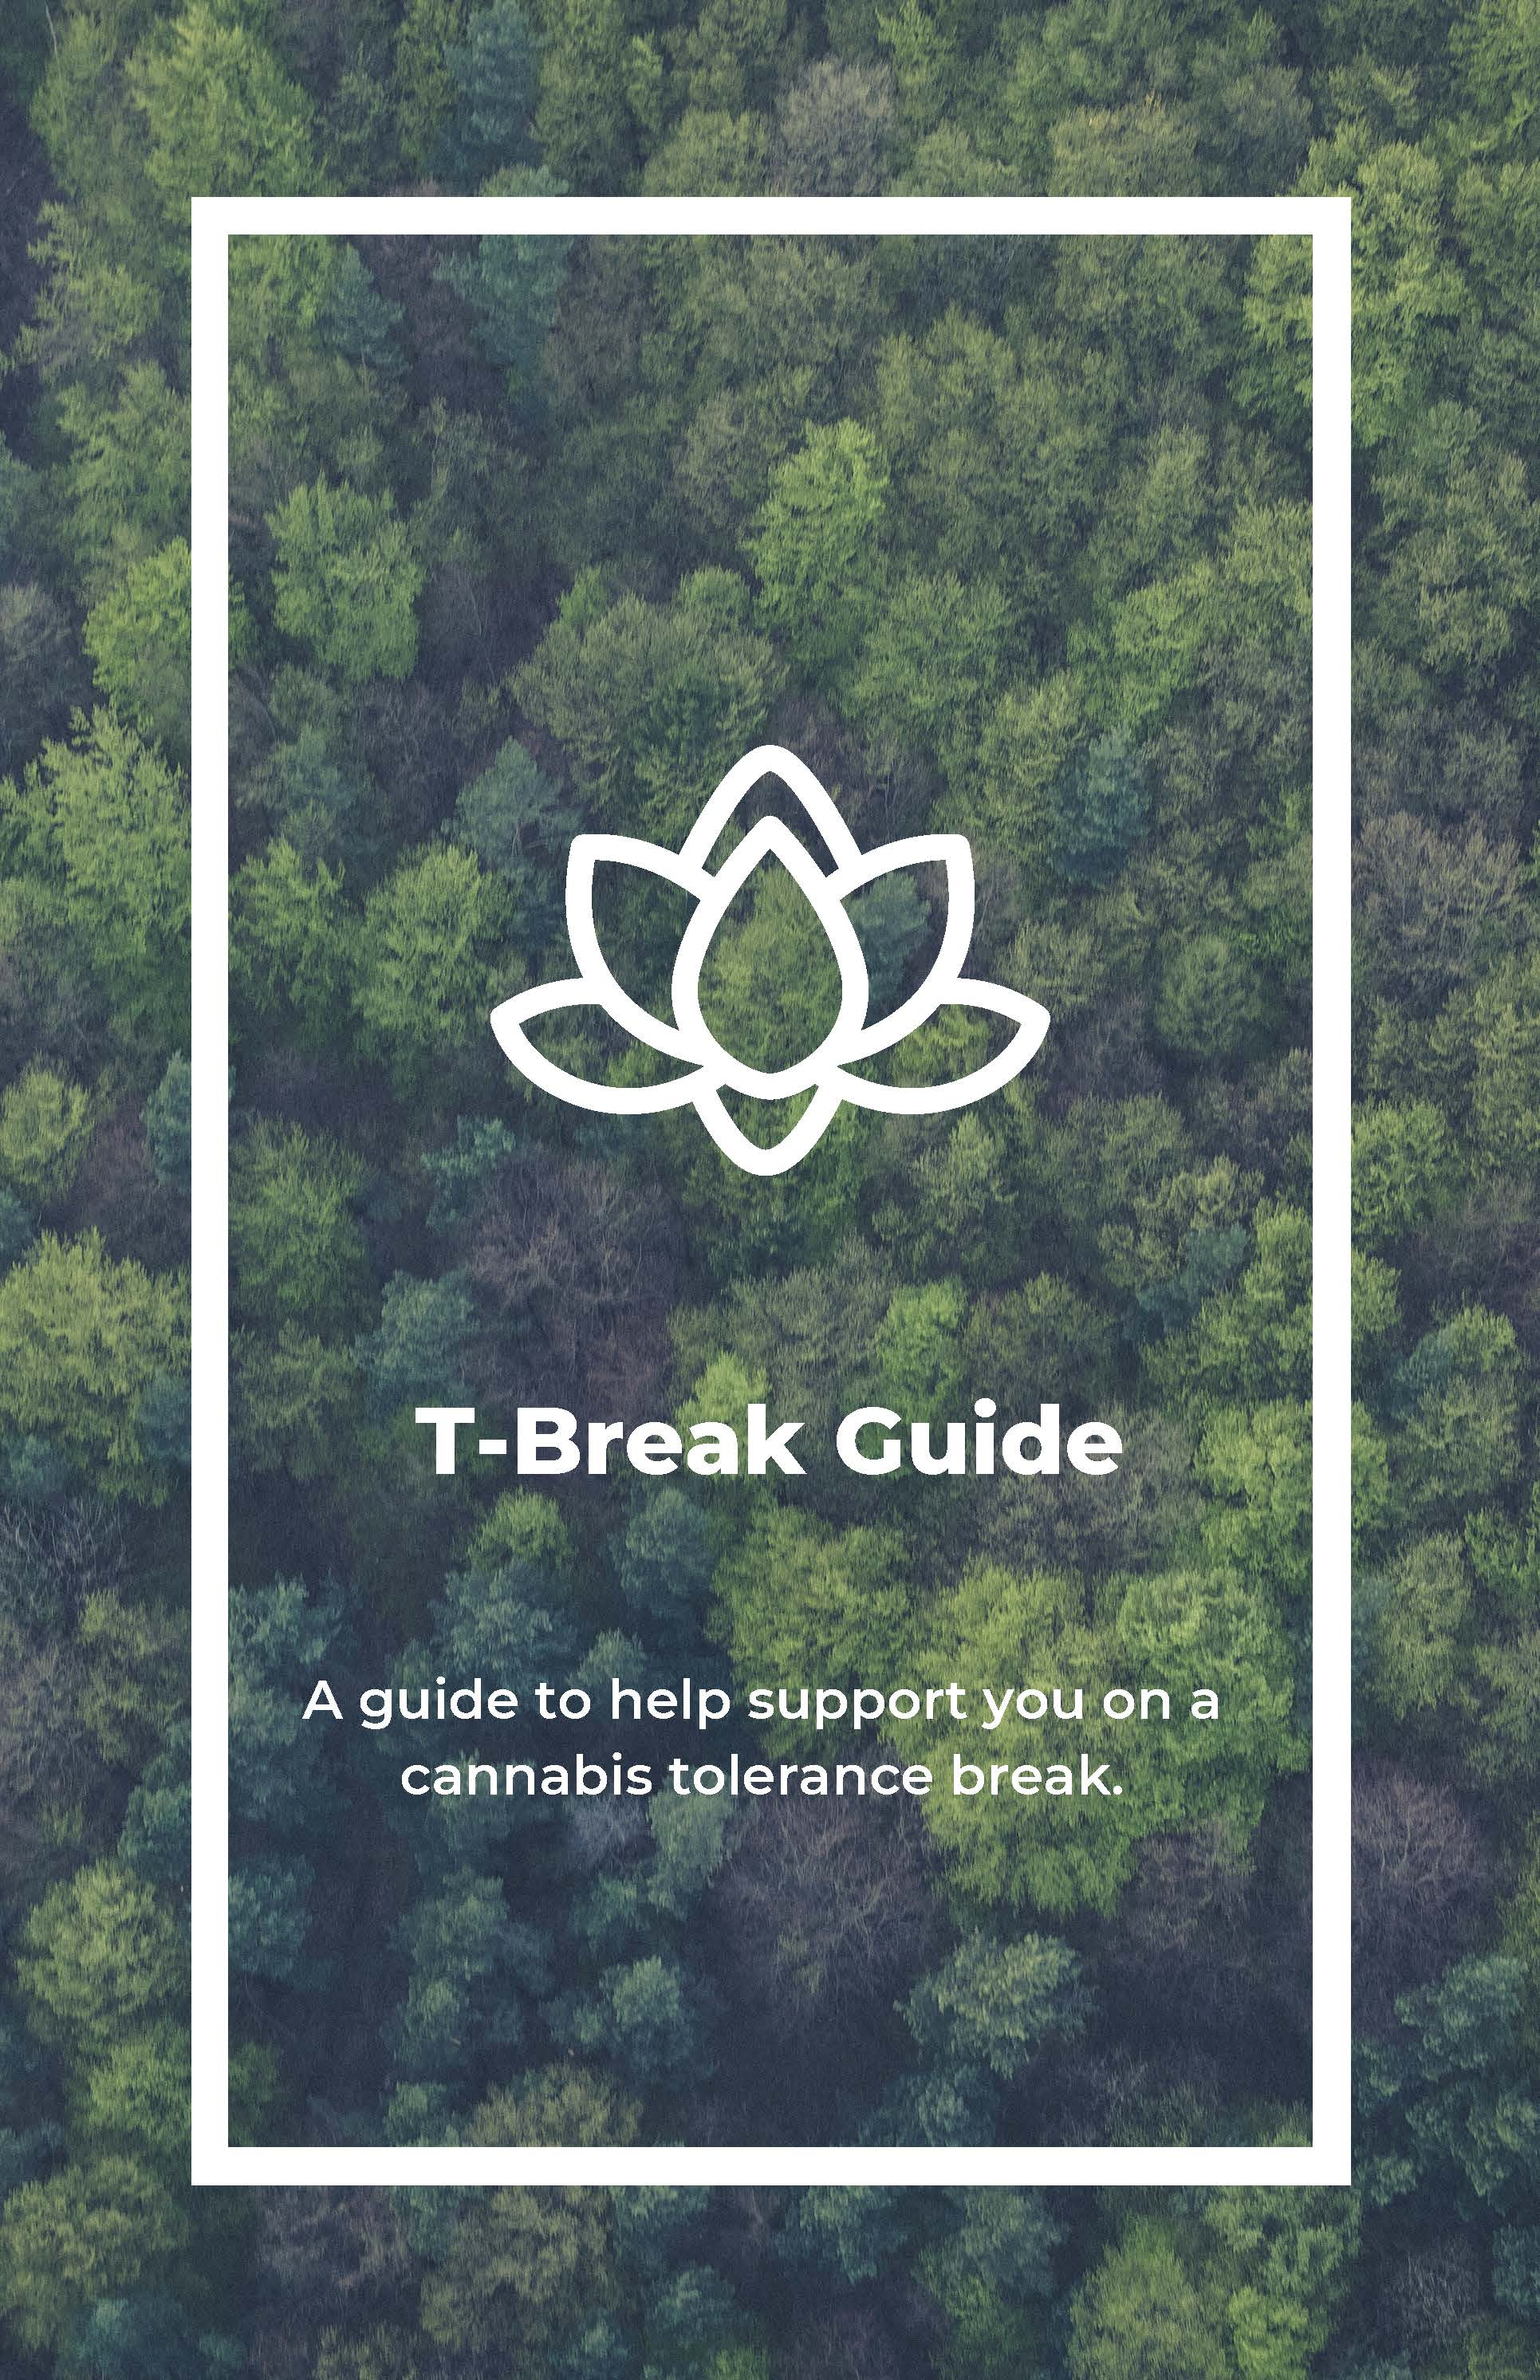 Cover photo of T-Break Guide